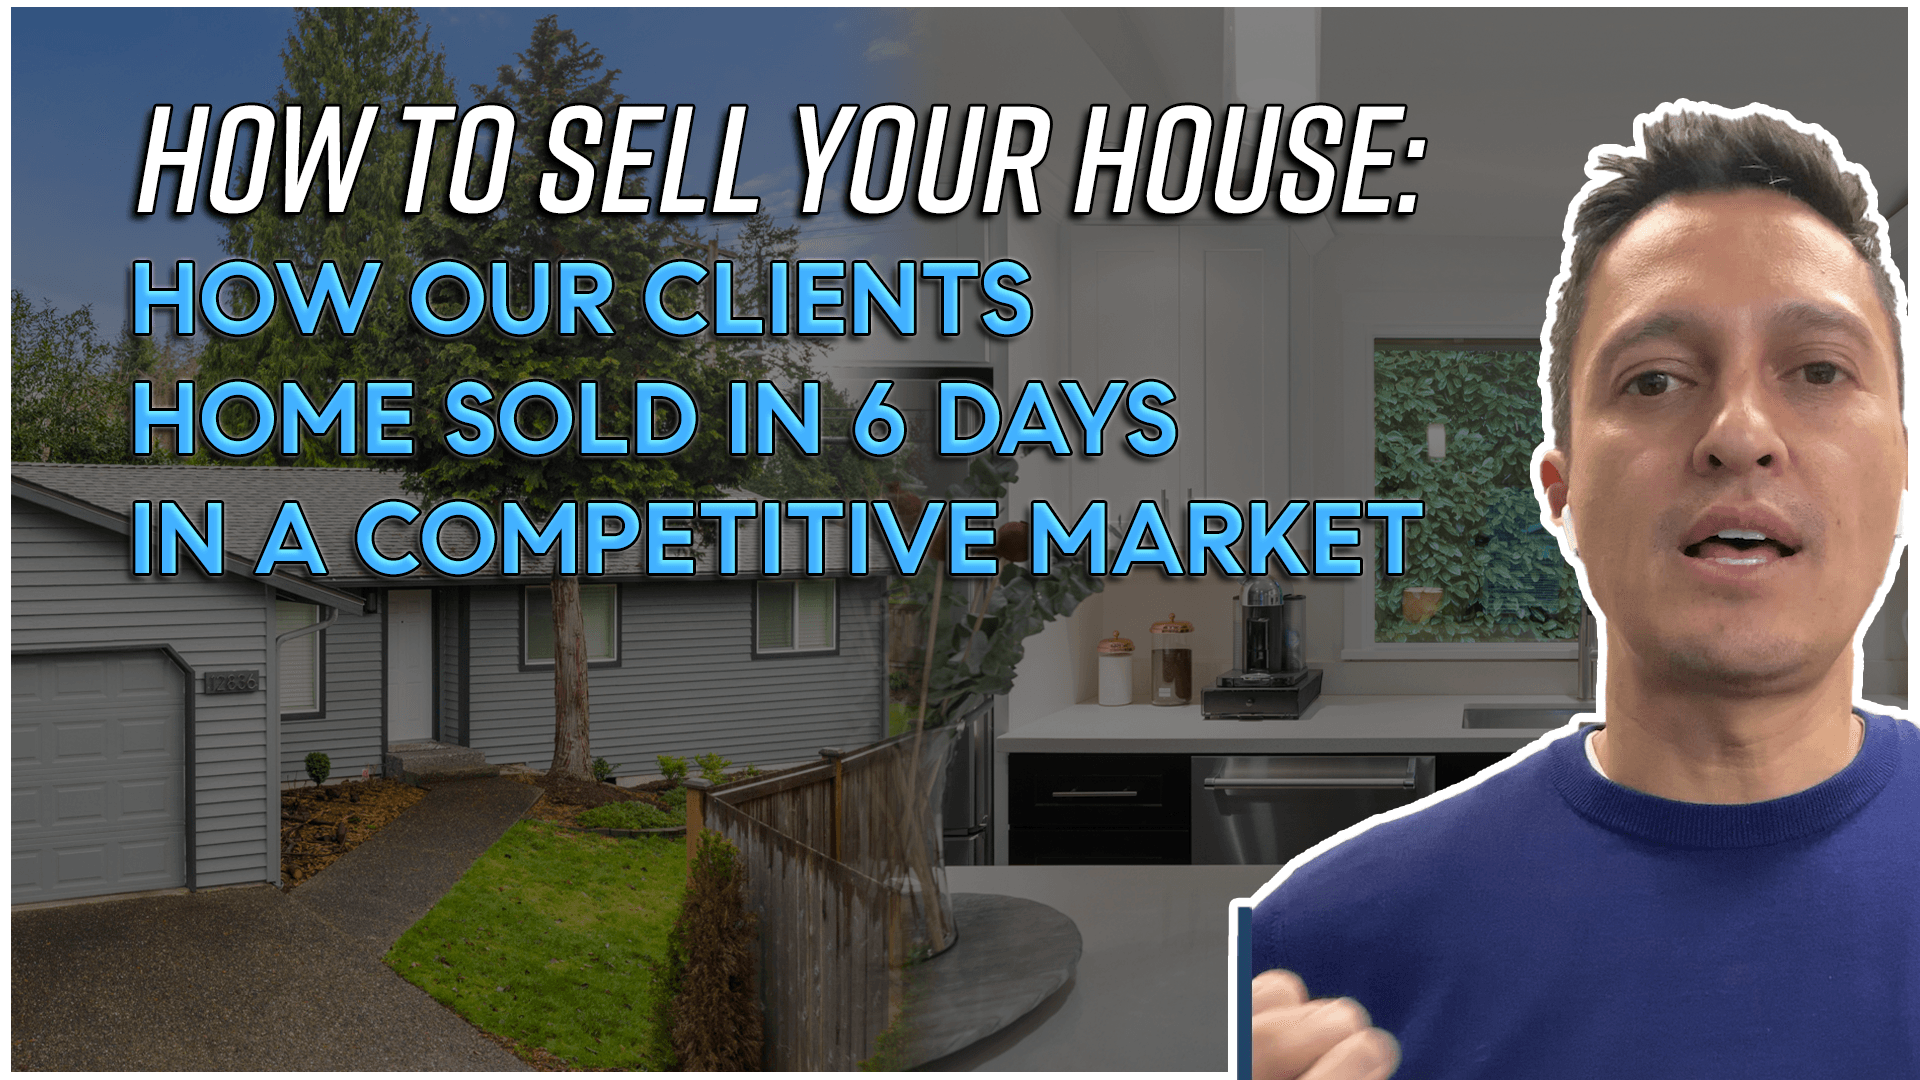 Seller Case Study: Exactly How We Prepared, Marketed & Sold Their Home in 6 Days for Above List Price